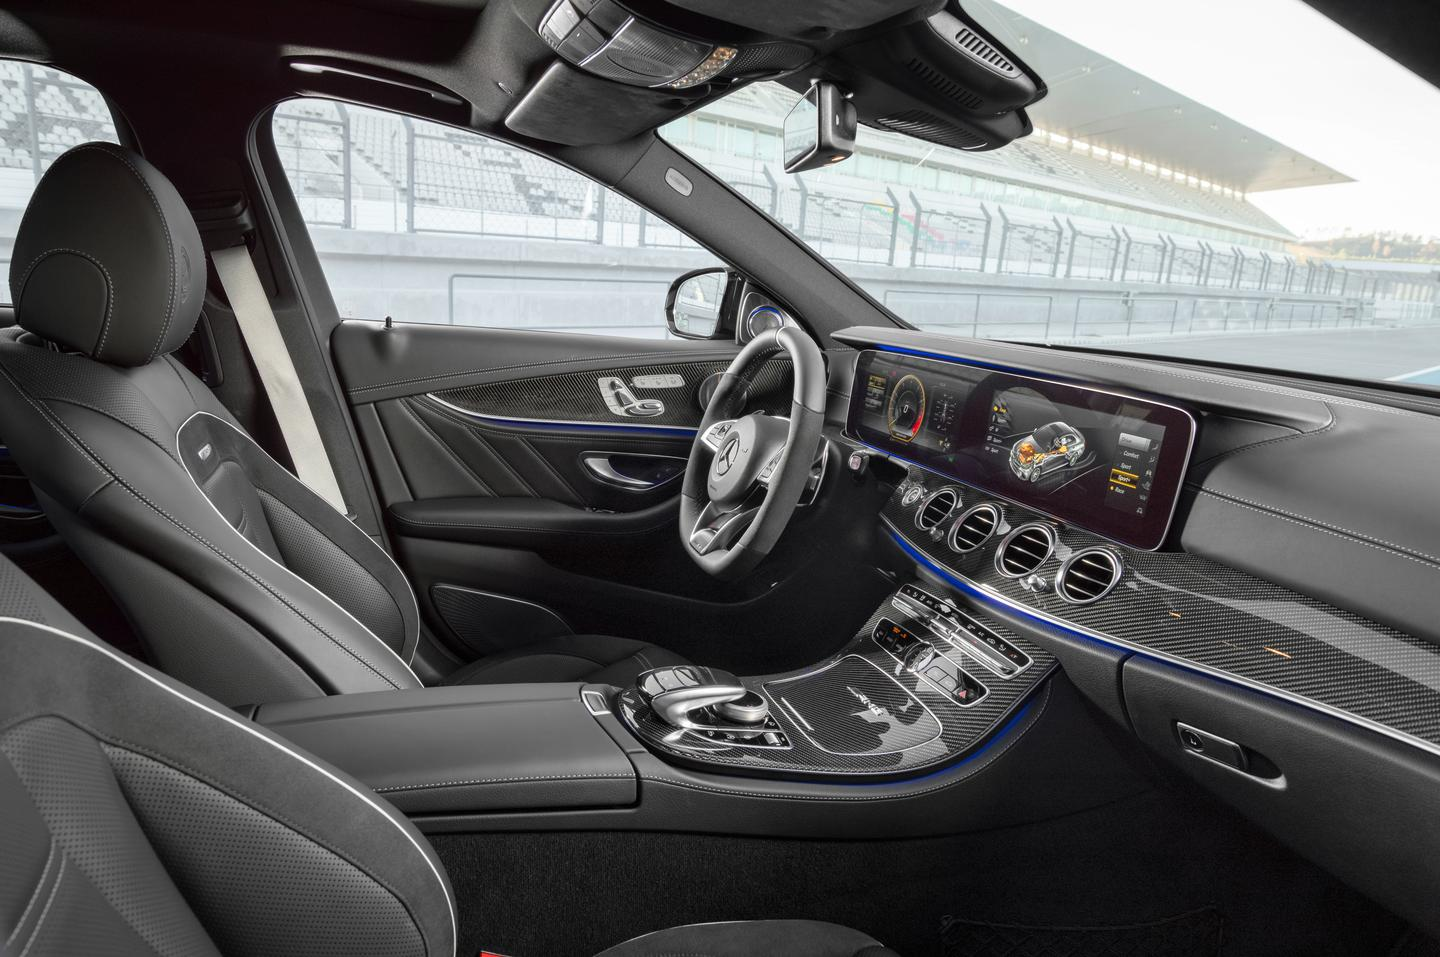 Behind the wheel of the E63 AMG 4MATIC